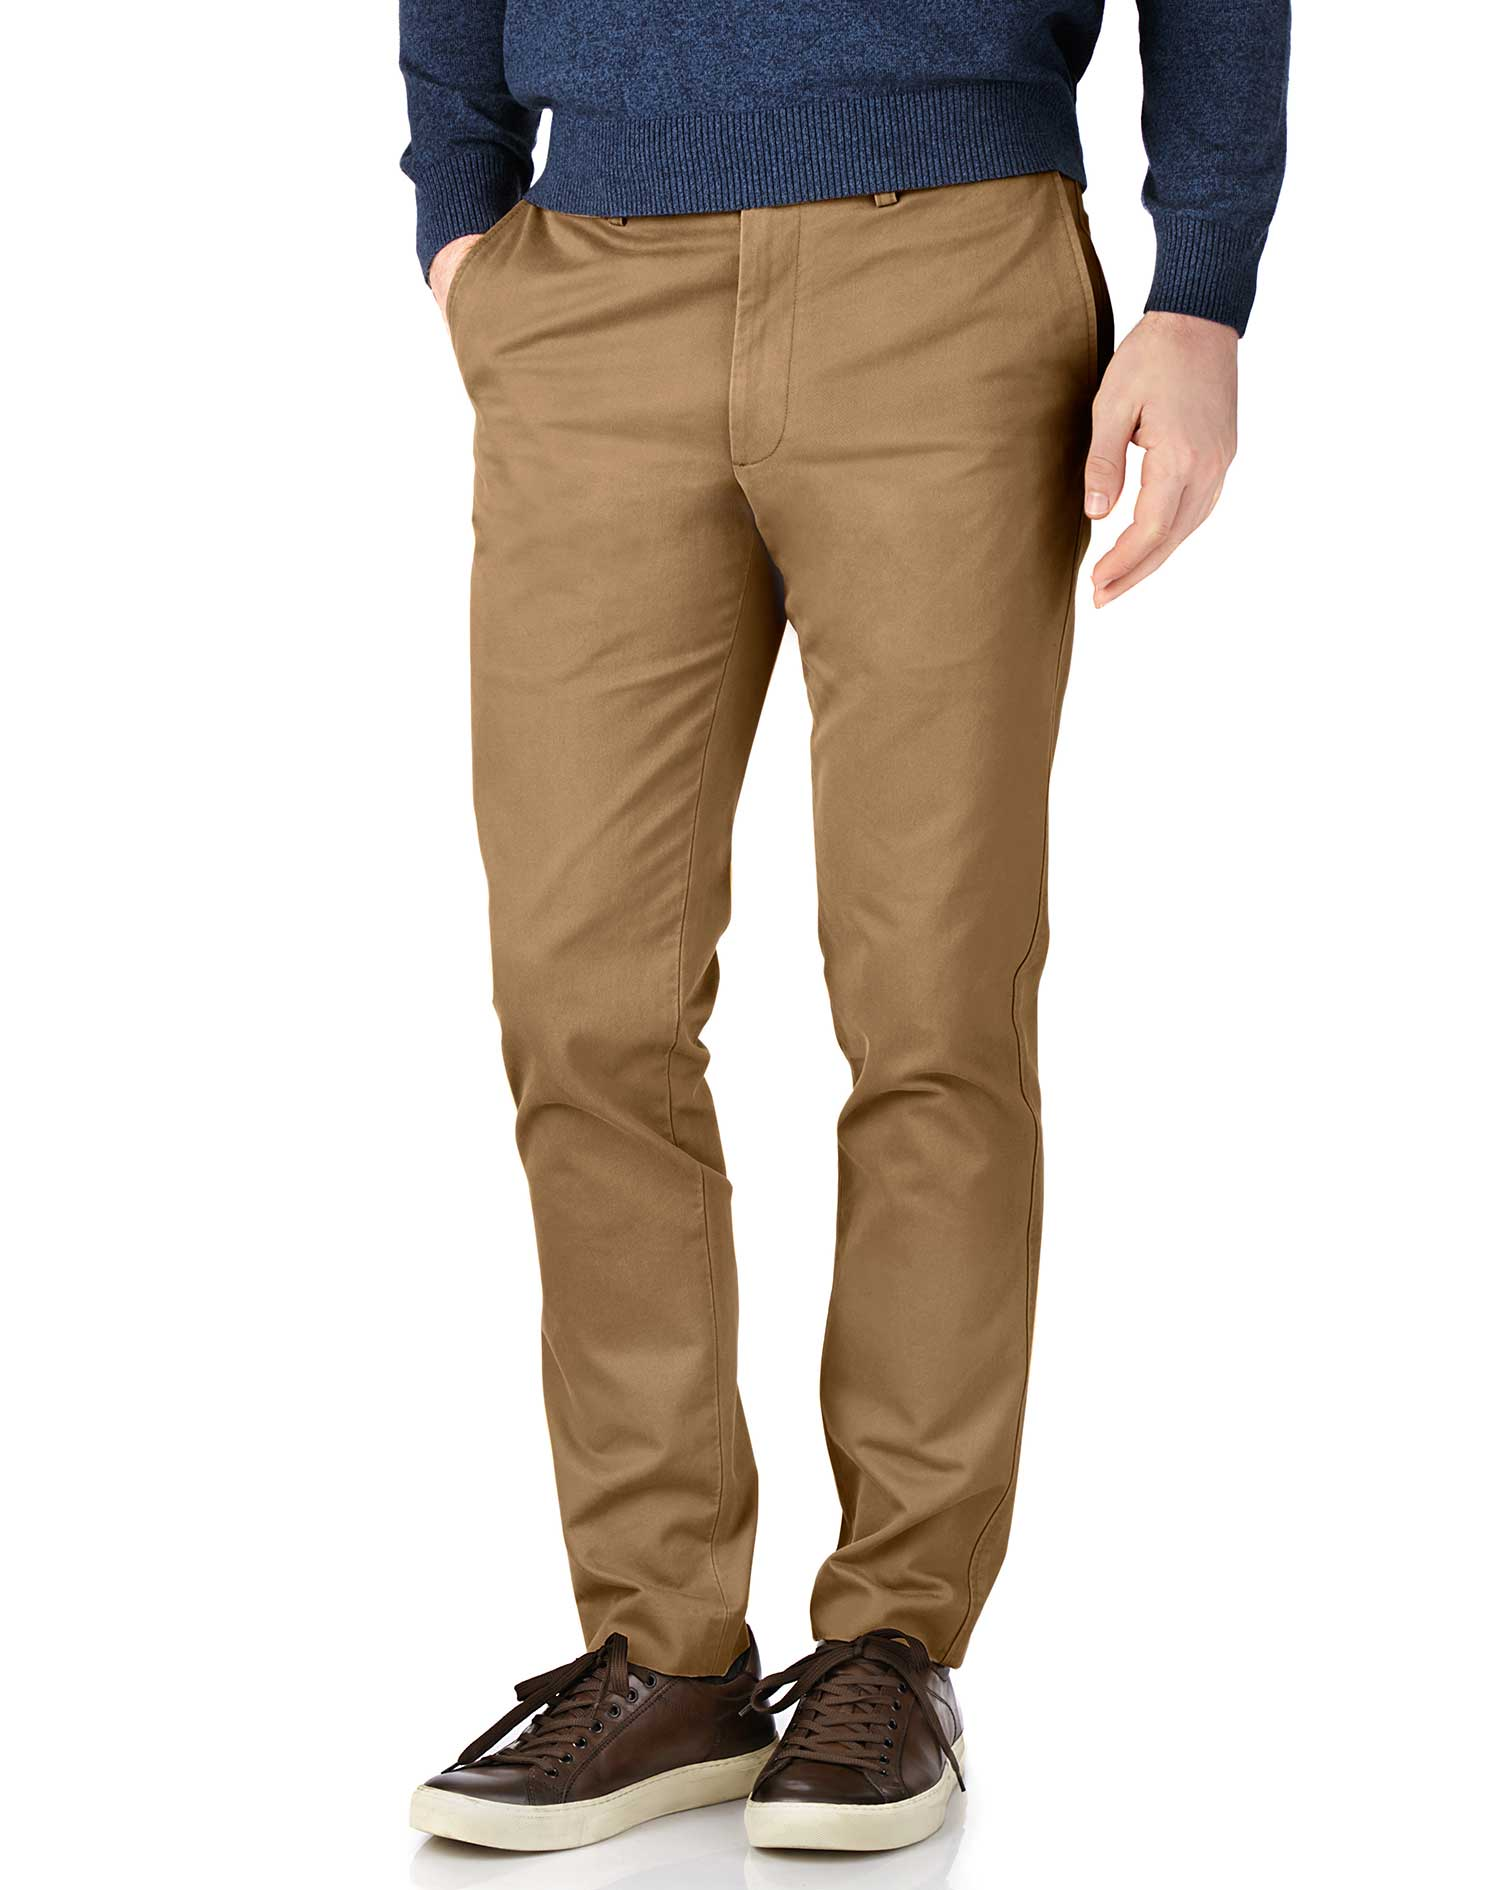 Tan Extra Slim Fit Flat Front Cotton Chino Trousers Size W36 L30 by Charles Tyrwhitt